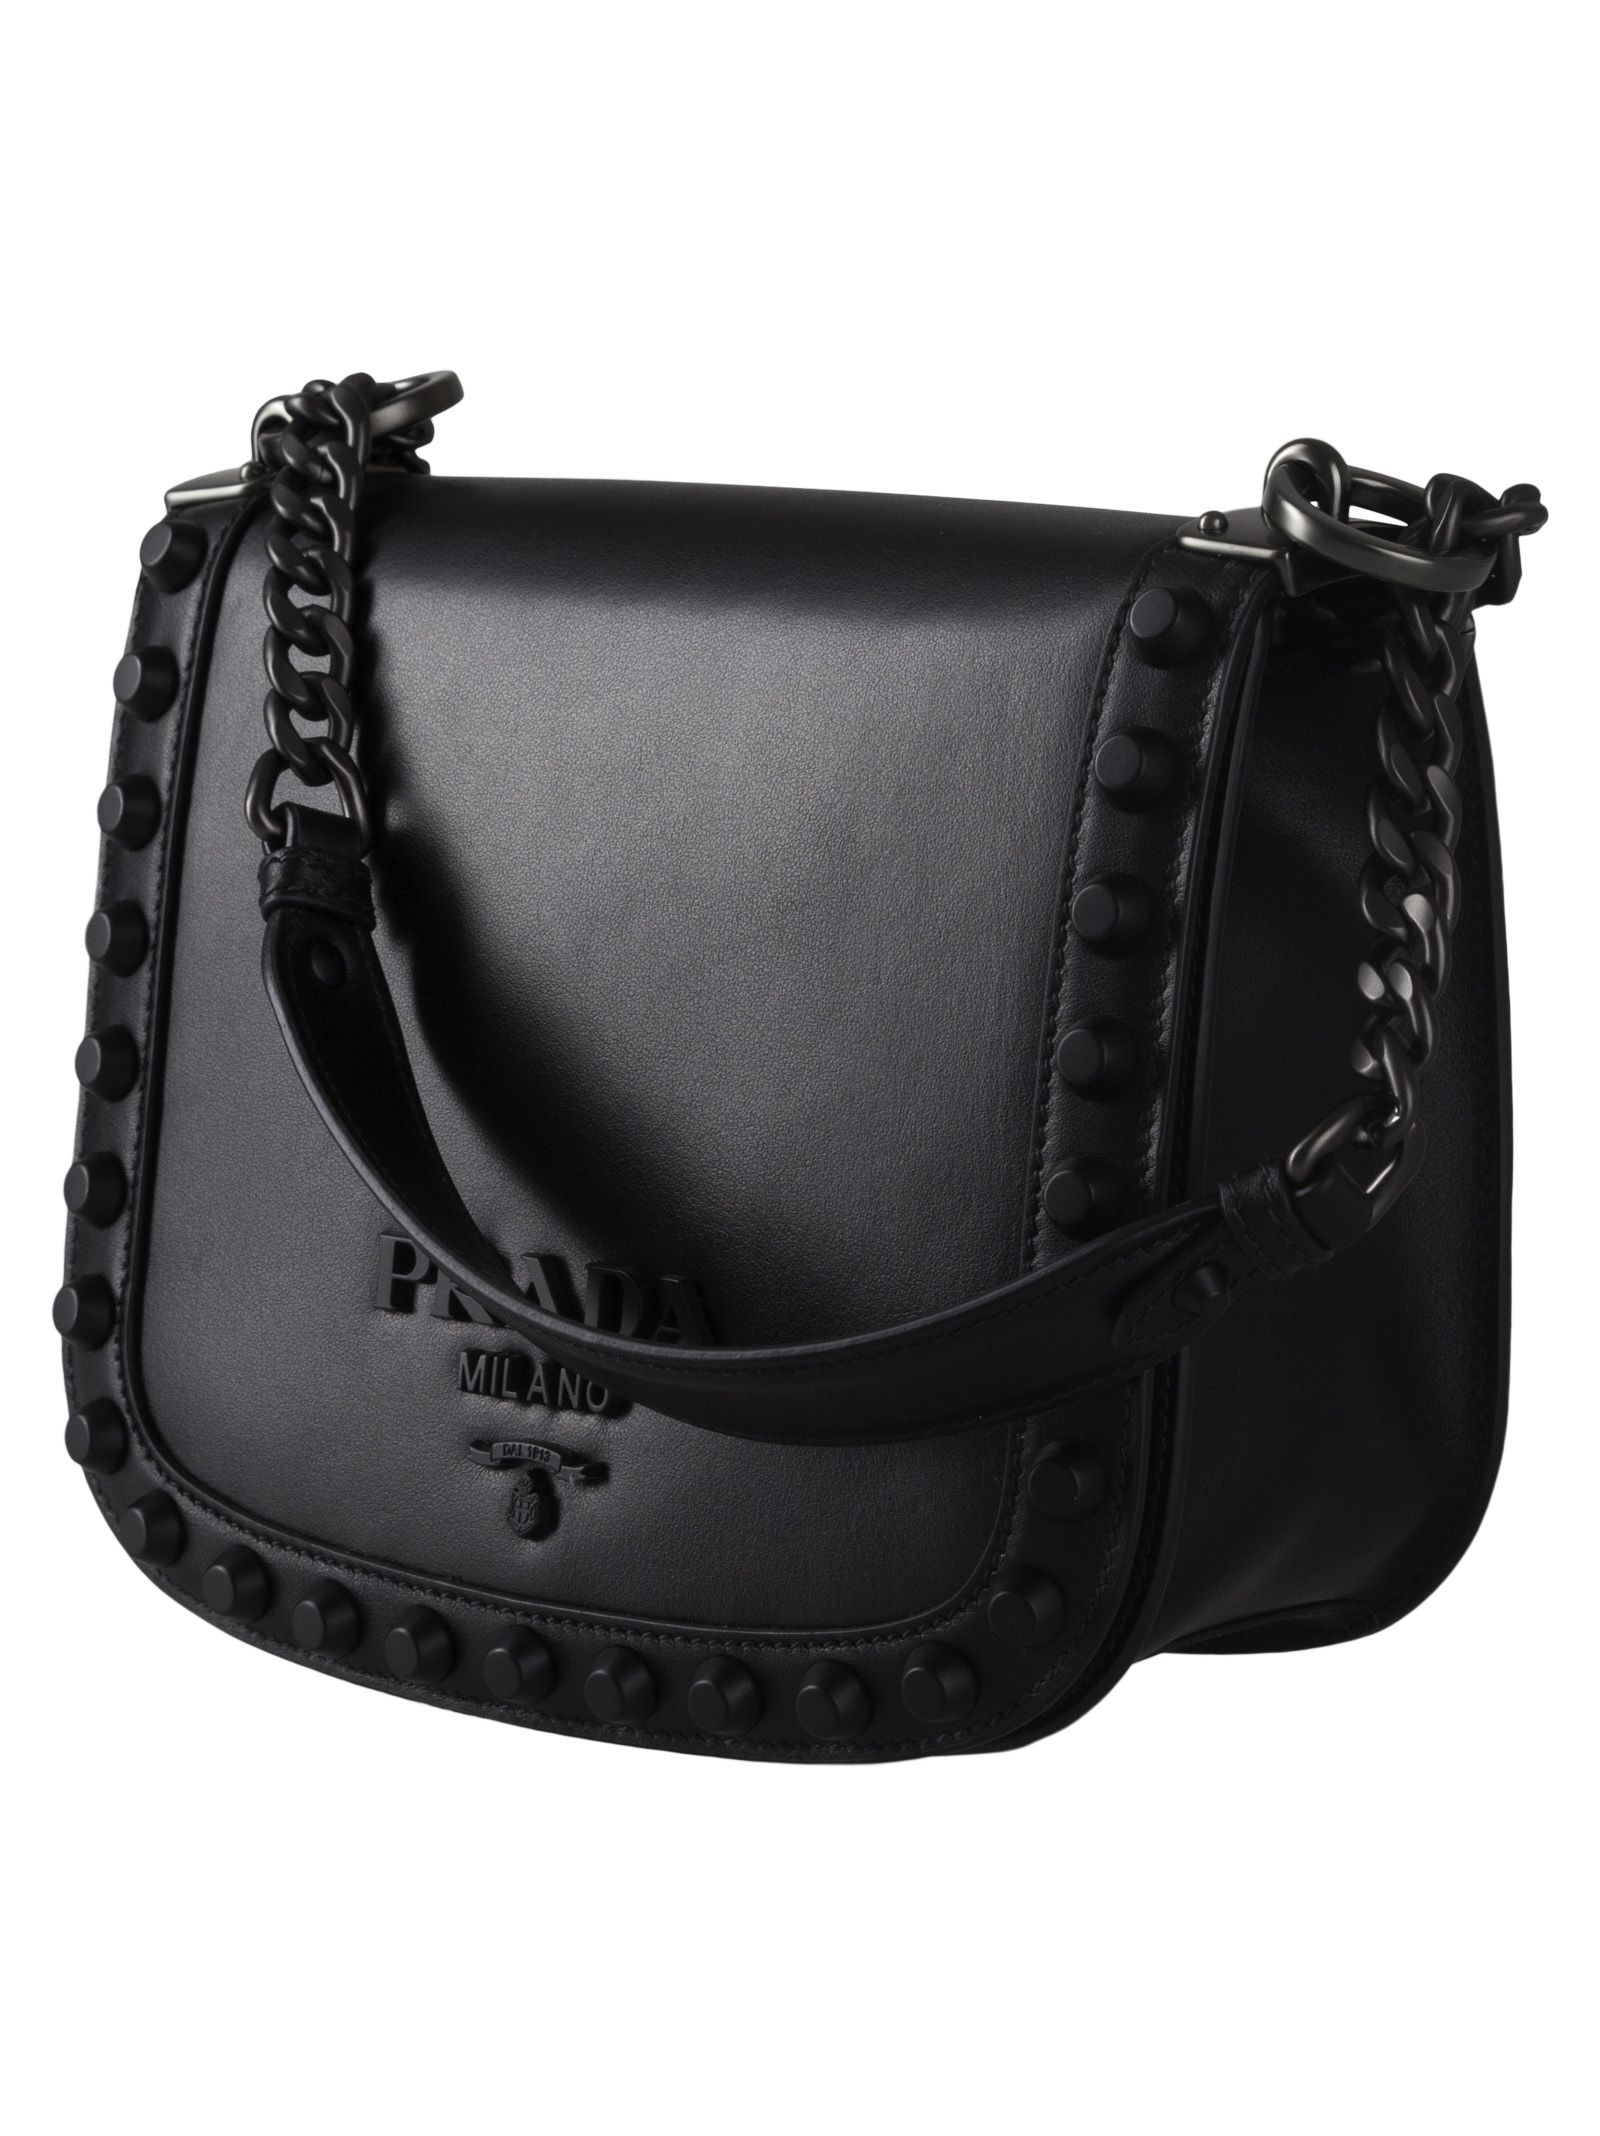 87f81f2753ce Prada Prada Studded Shoulder Bag - Basic - 10707816